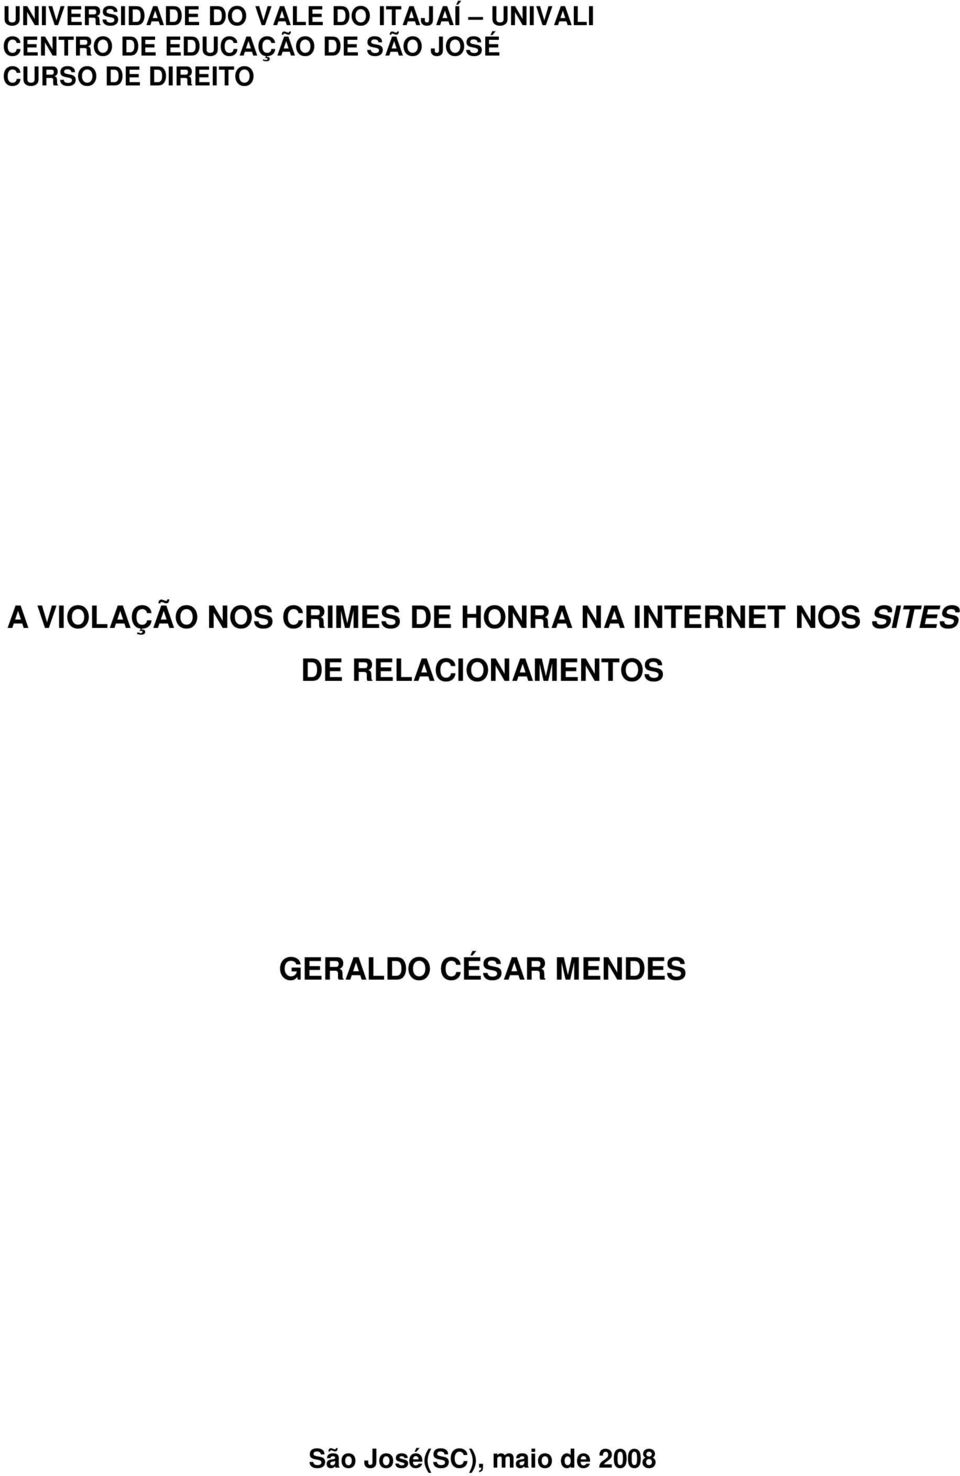 NOS CRIMES DE HONRA NA INTERNET NOS SITES DE